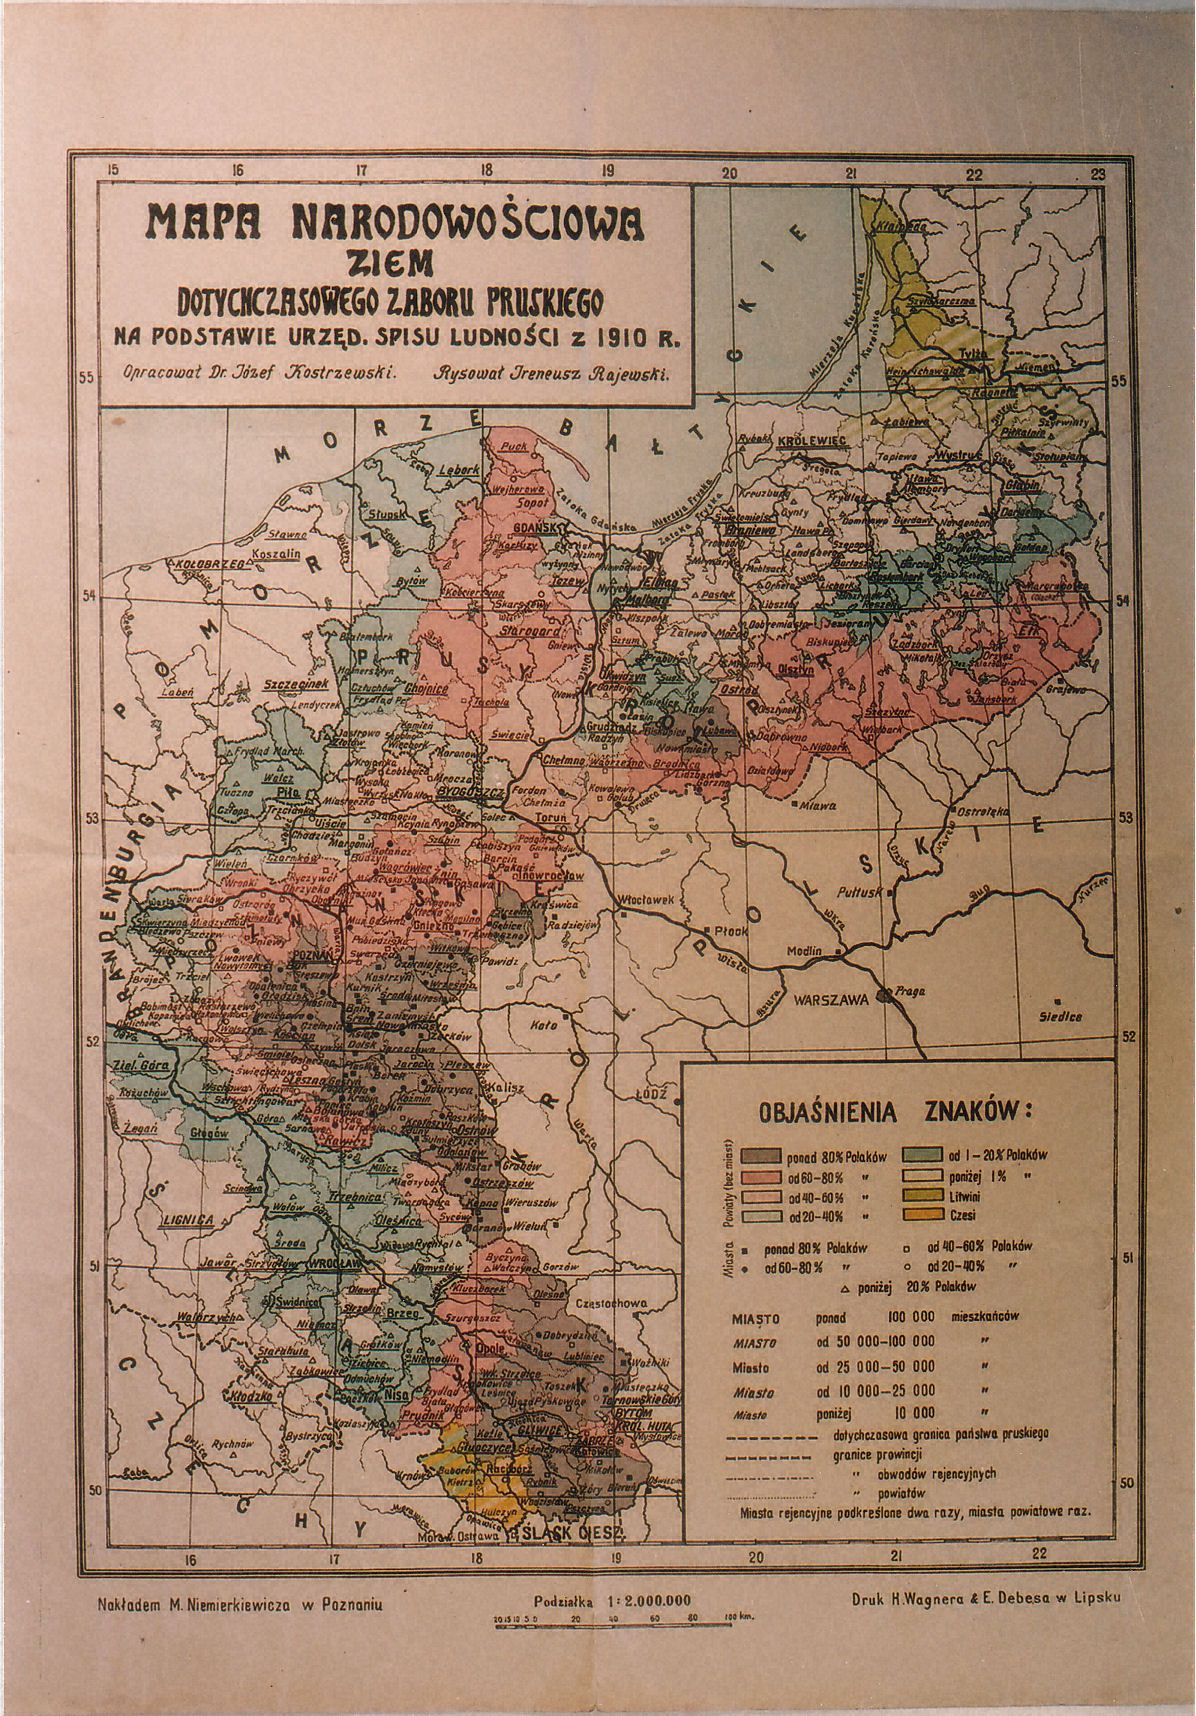 Ethnic Map Of The Former Prussian Partition Lands Based On The - Germany map lands